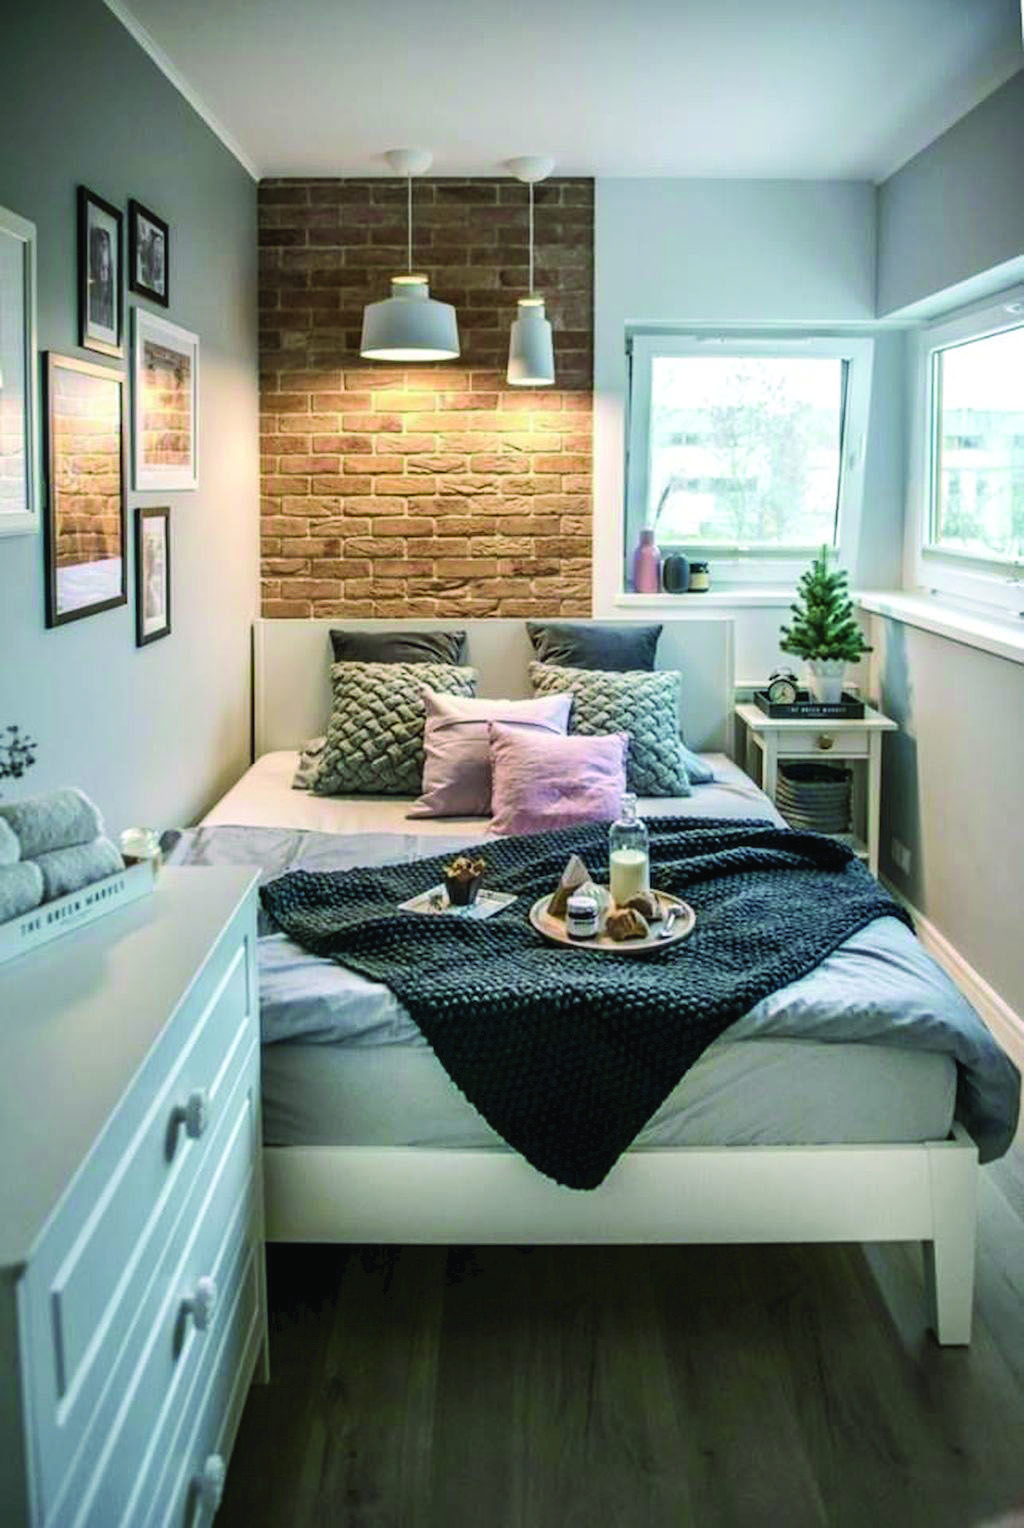 Fabulous Apartment Bedroom Ideas Pinterest For Your Home Small Guest Bedroom Small Apartment Bedrooms Small Room Design